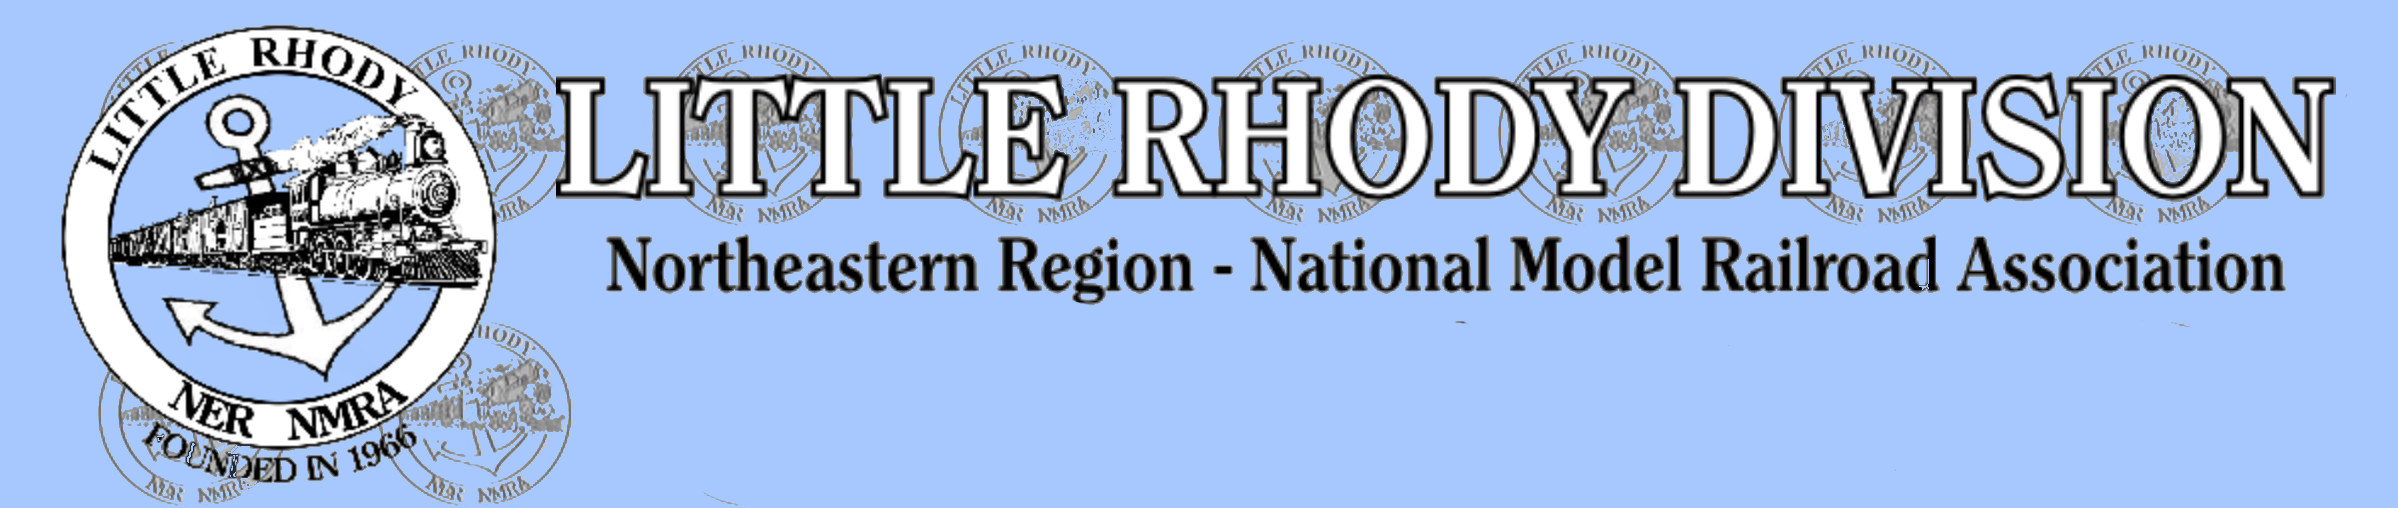 Little Rhody Division